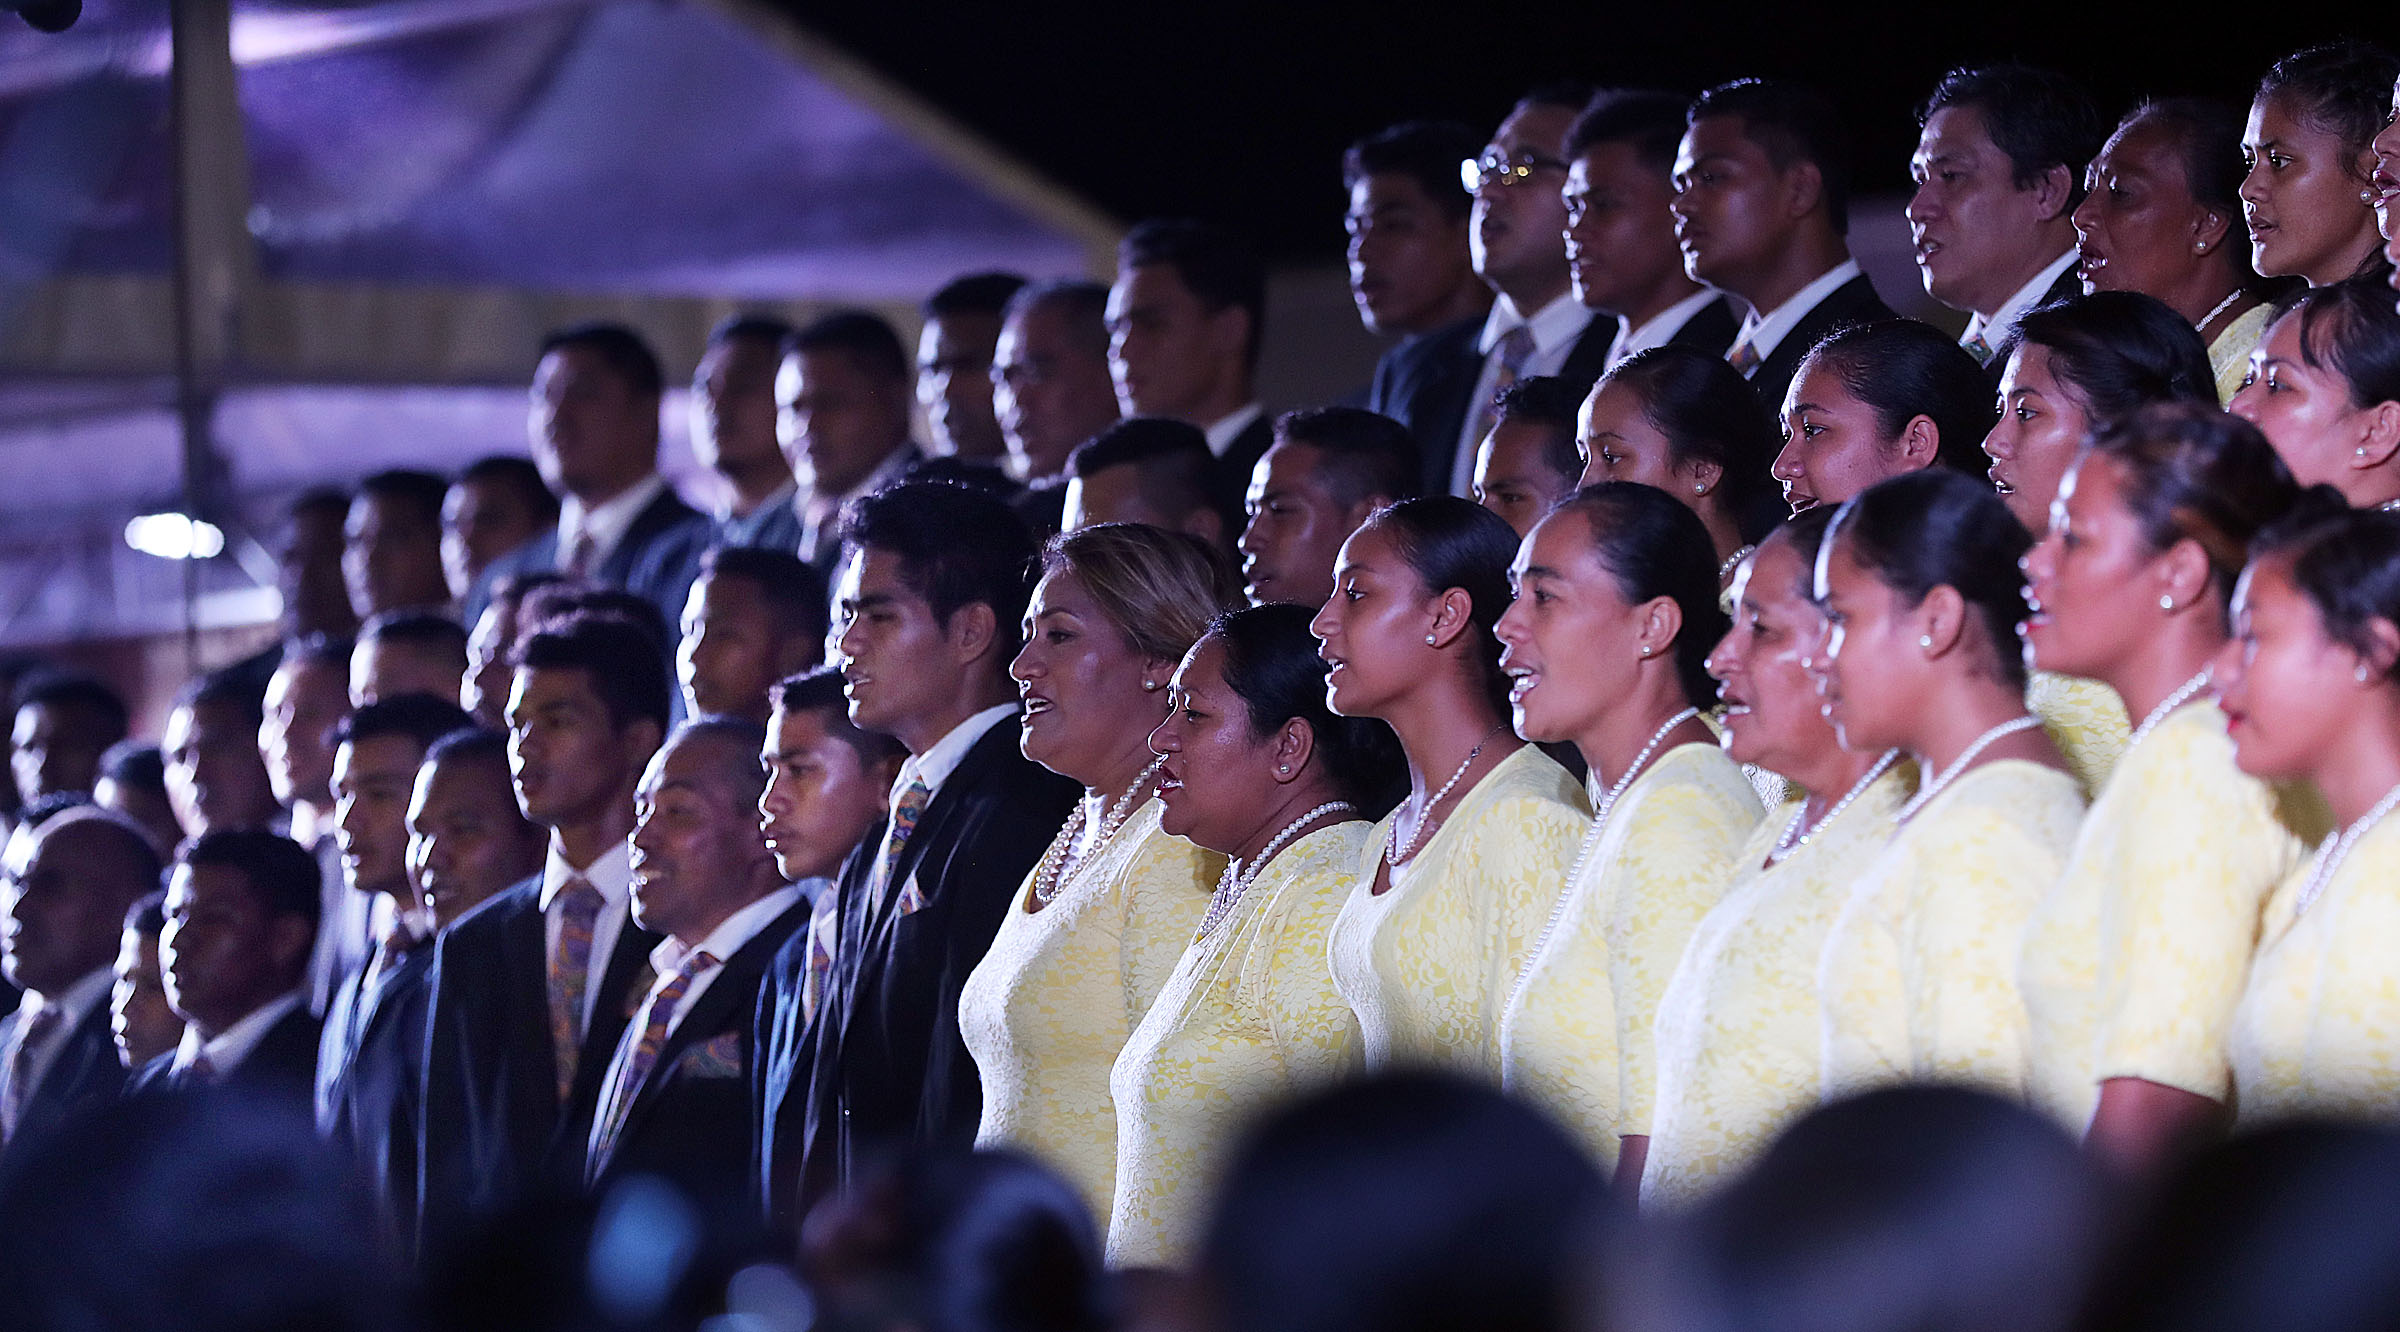 Members of the Apia Samoa Central Stake Choir sing during a devotional with President Russell M. Nelson of The Church of Jesus Christ of Latter-day Saints in Apia, Samoa, on Saturday, May 18, 2019.